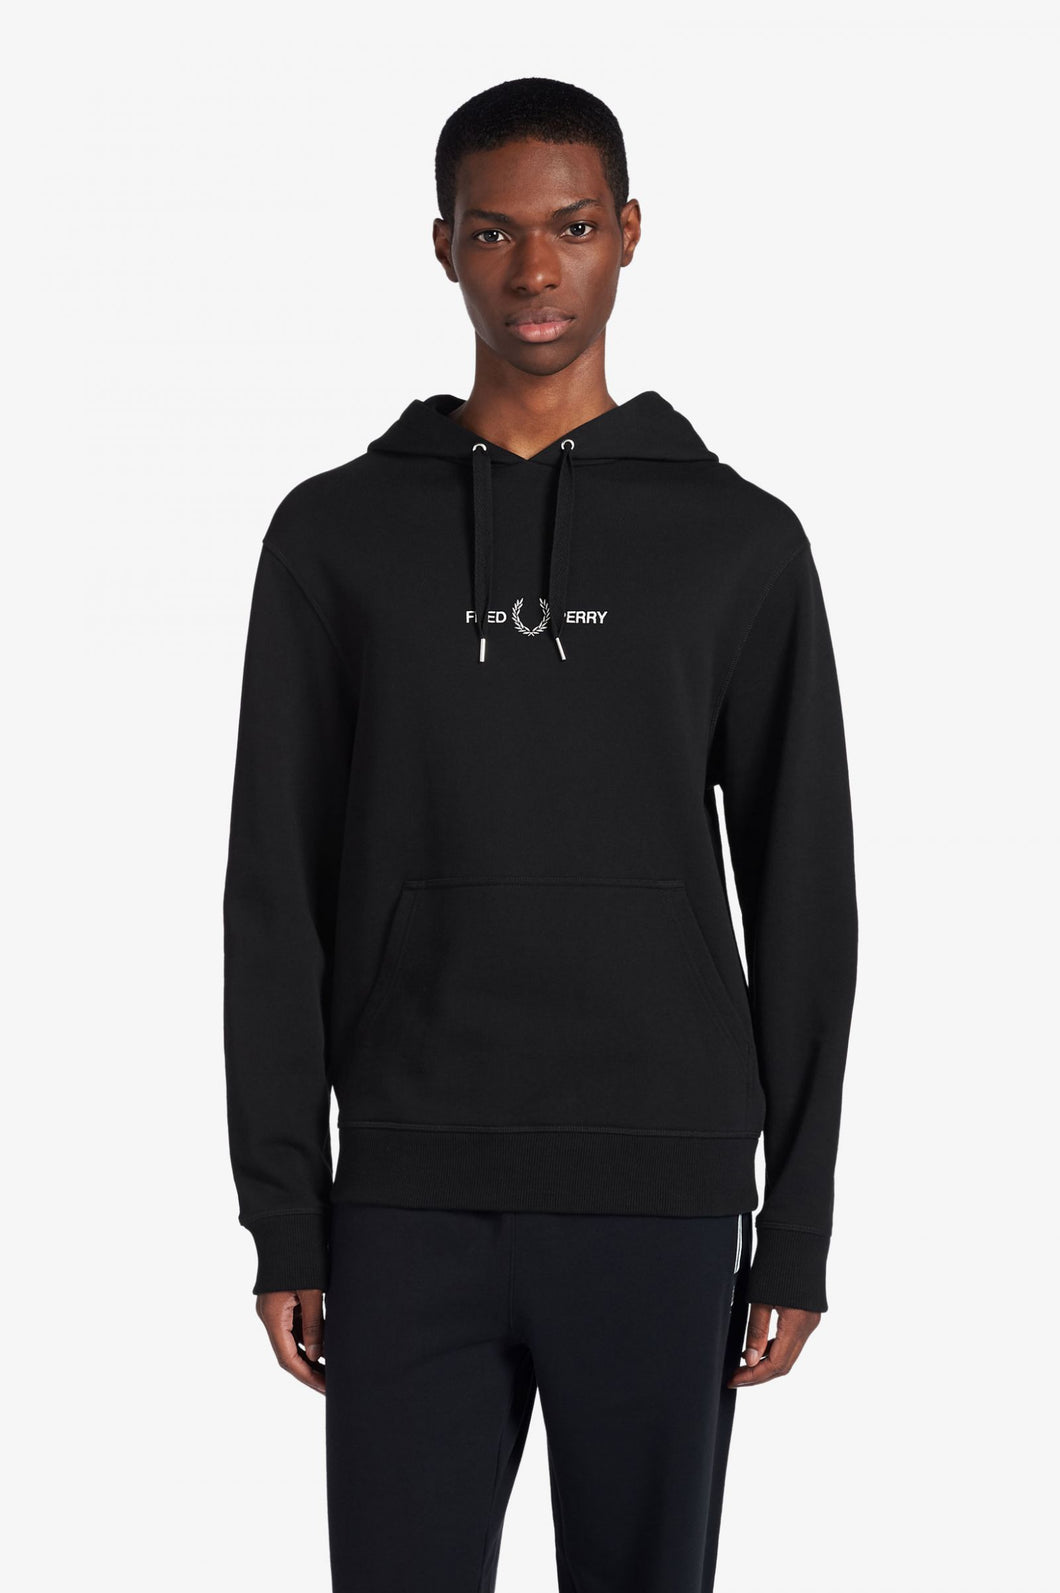 FRED PERRY HOODY FRONTLOGO GESTICKT BLACK